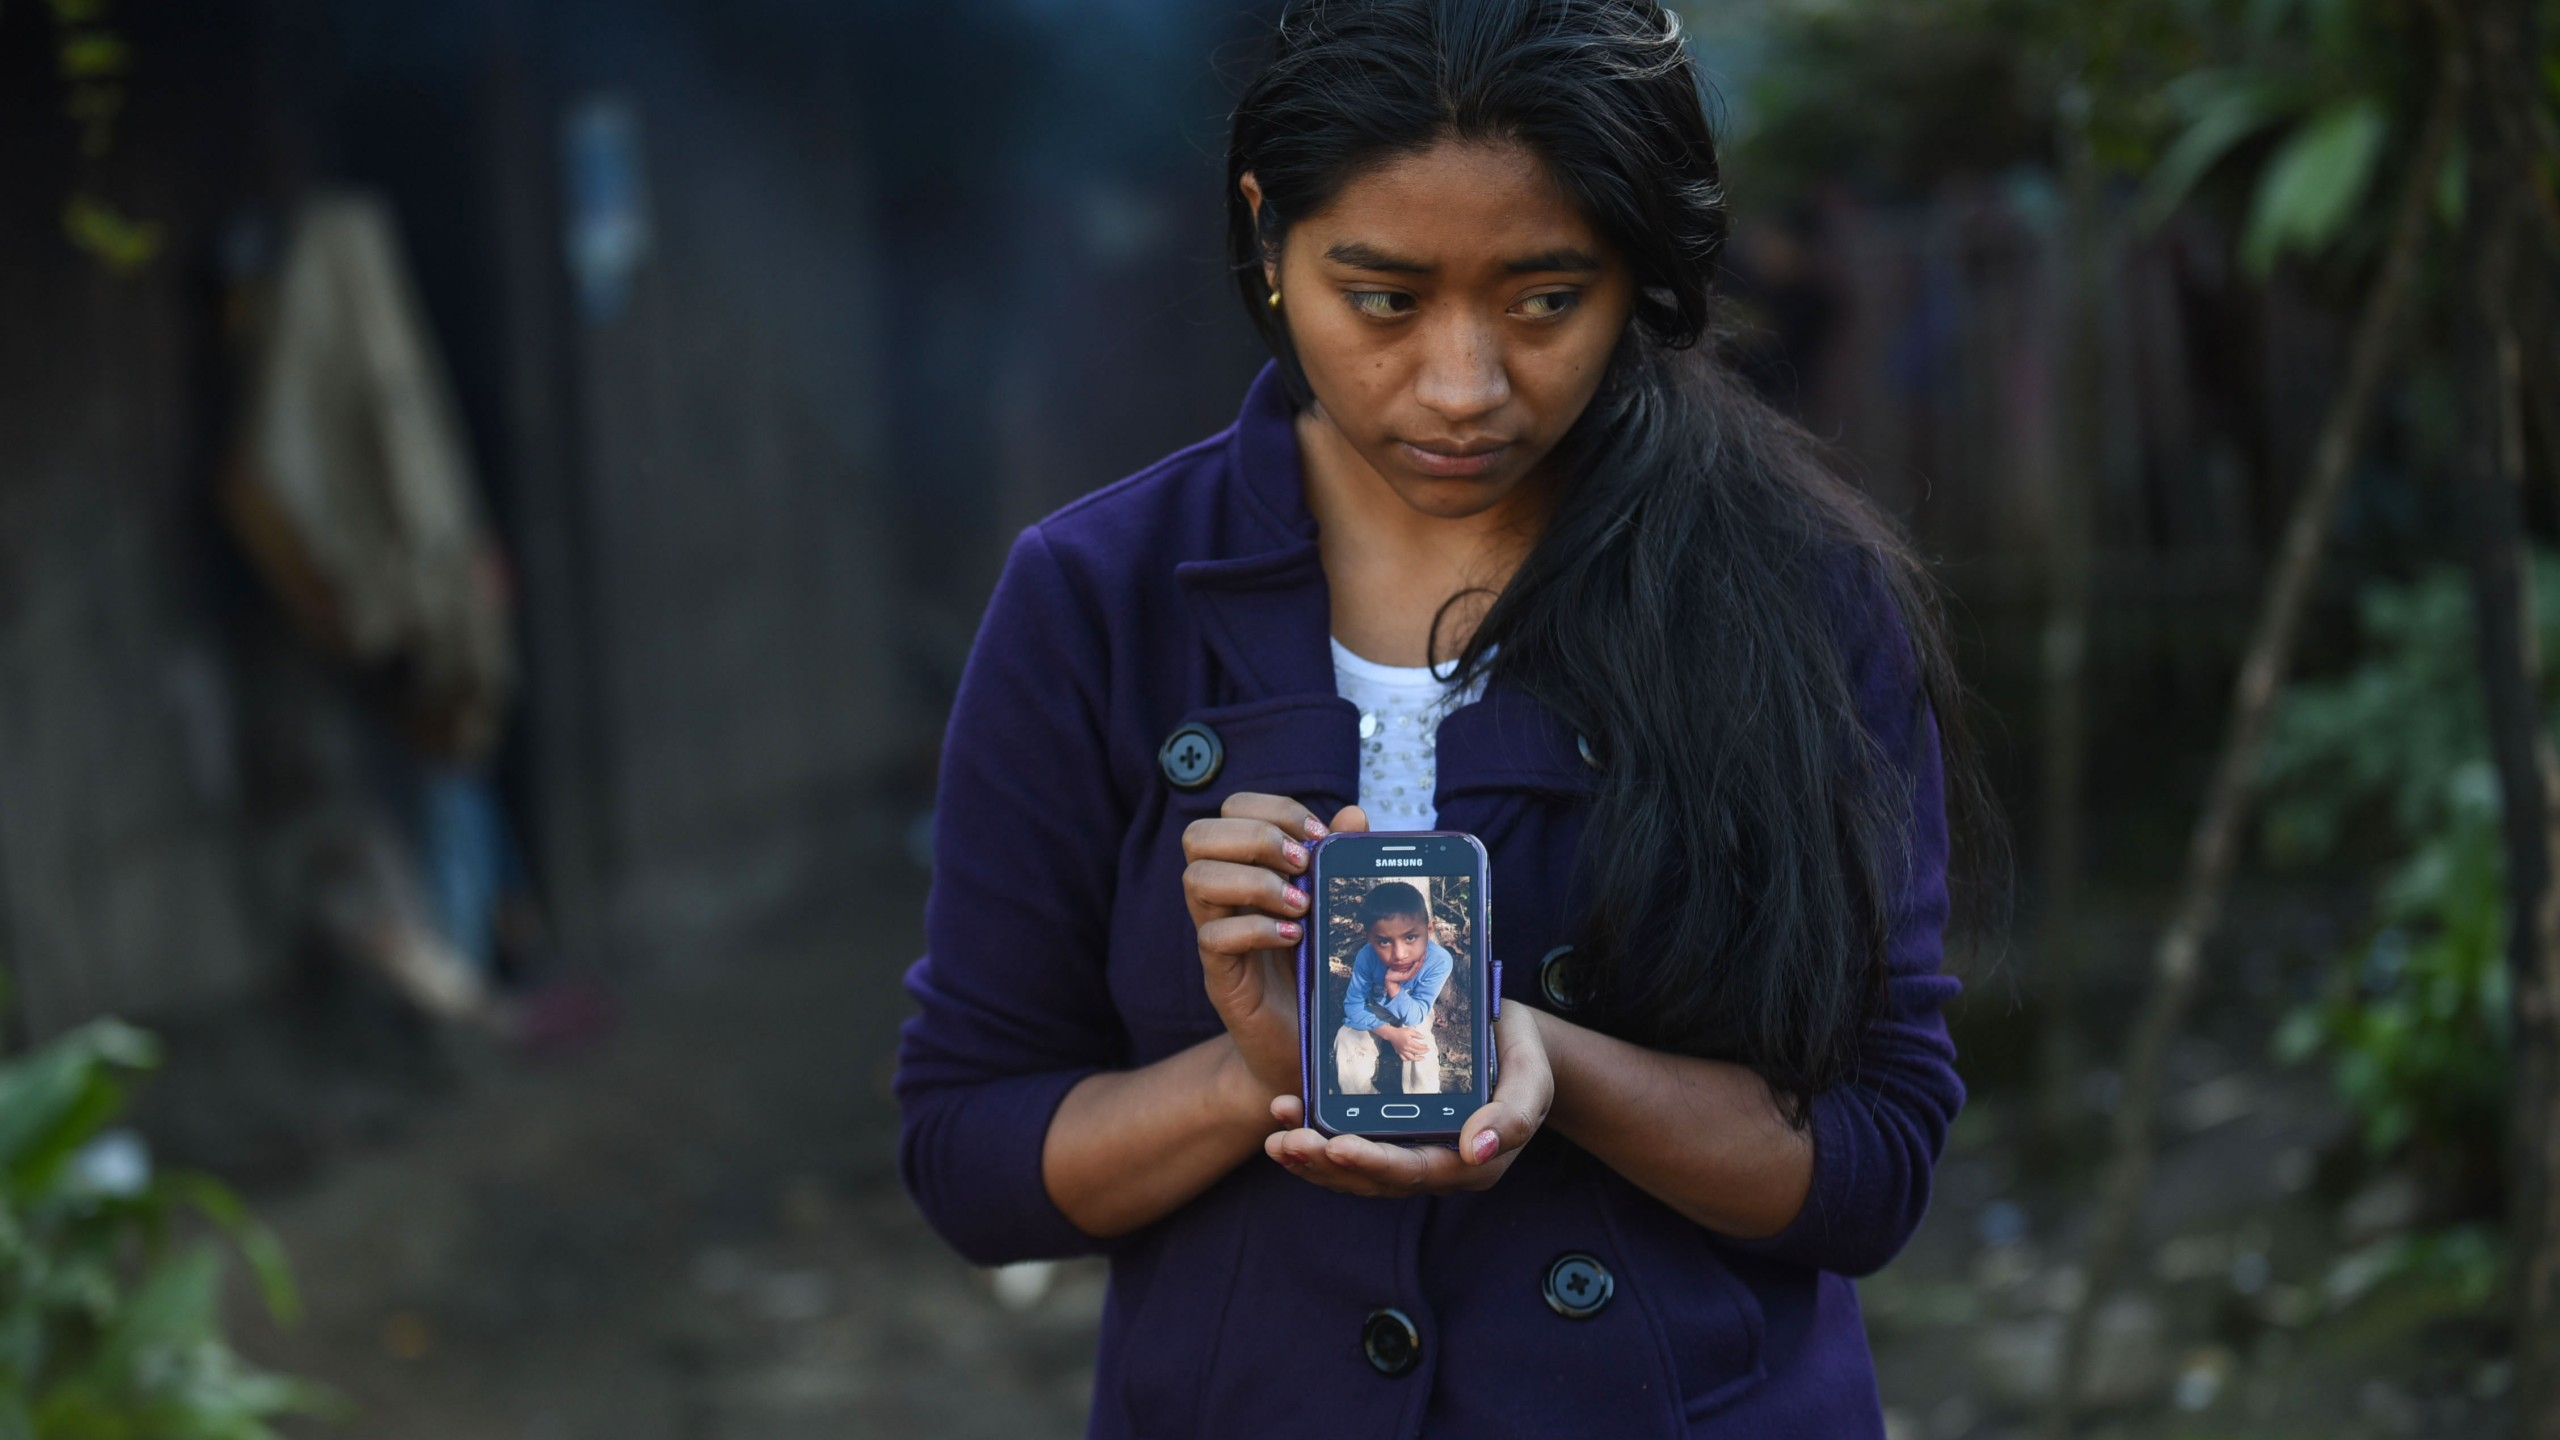 Catarina Gomez Lucas holds up a phone displaying an image of her brother Felipe Gomez in Guatemala on Dec. 28, 2018. (Credit: JOHAN ORDONEZ/AFP/Getty Images)